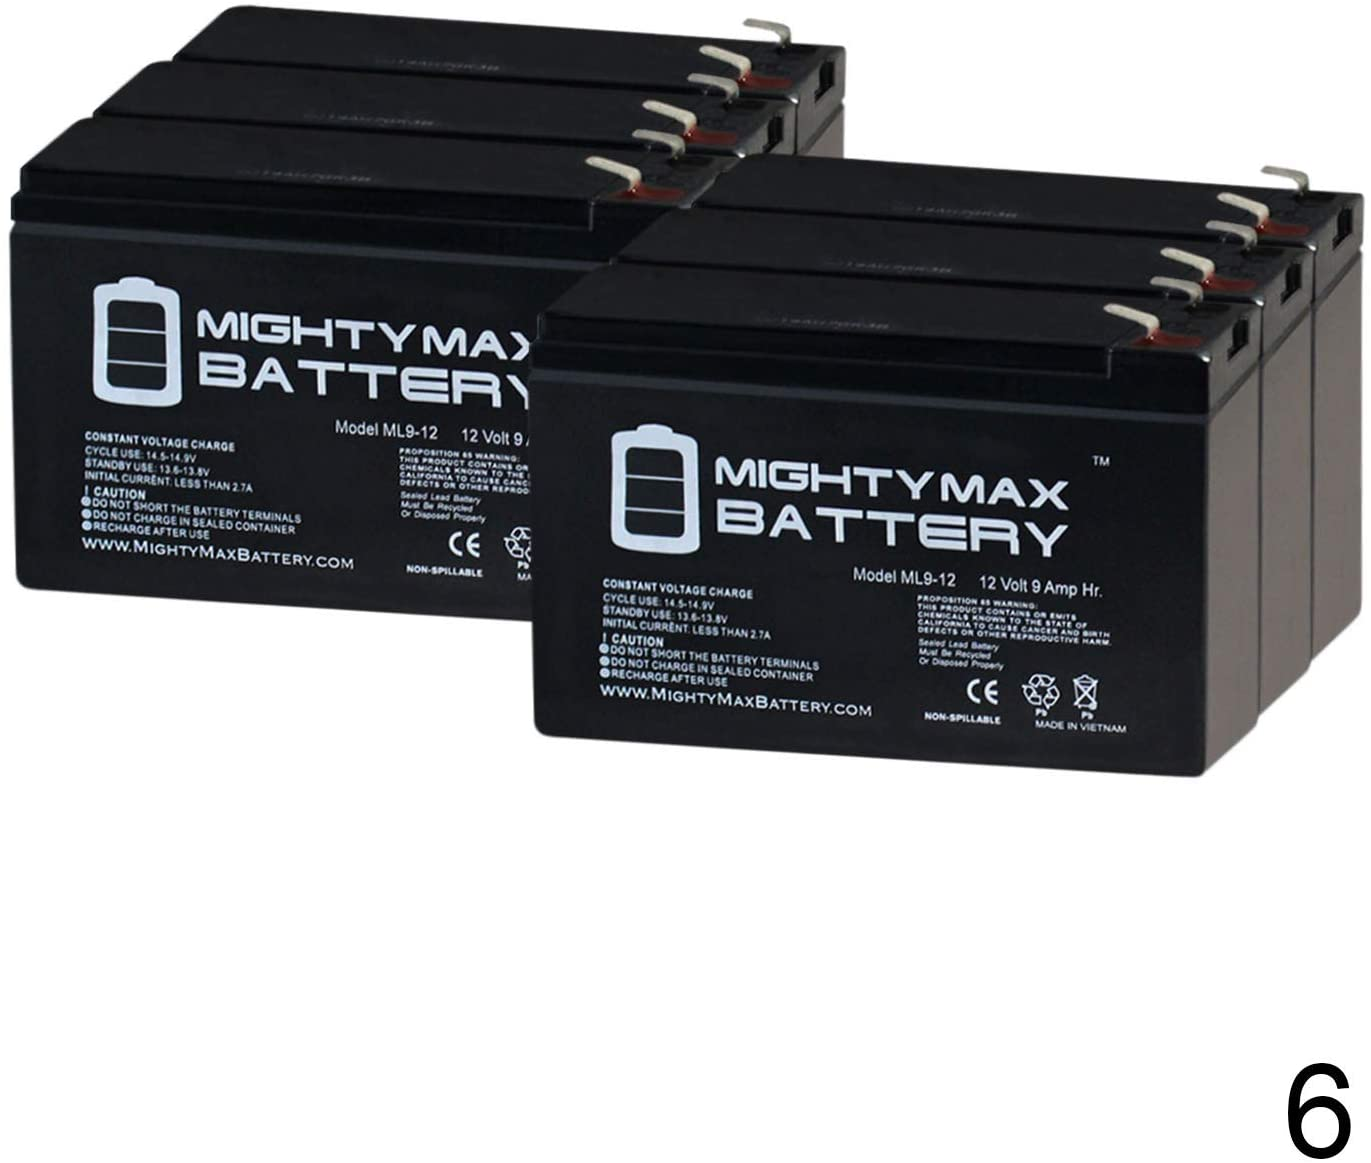 Mighty Max Battery Altronix SMP5PMP16 12V, 9Ah Lead Acid Battery - 6 Pack Brand Product